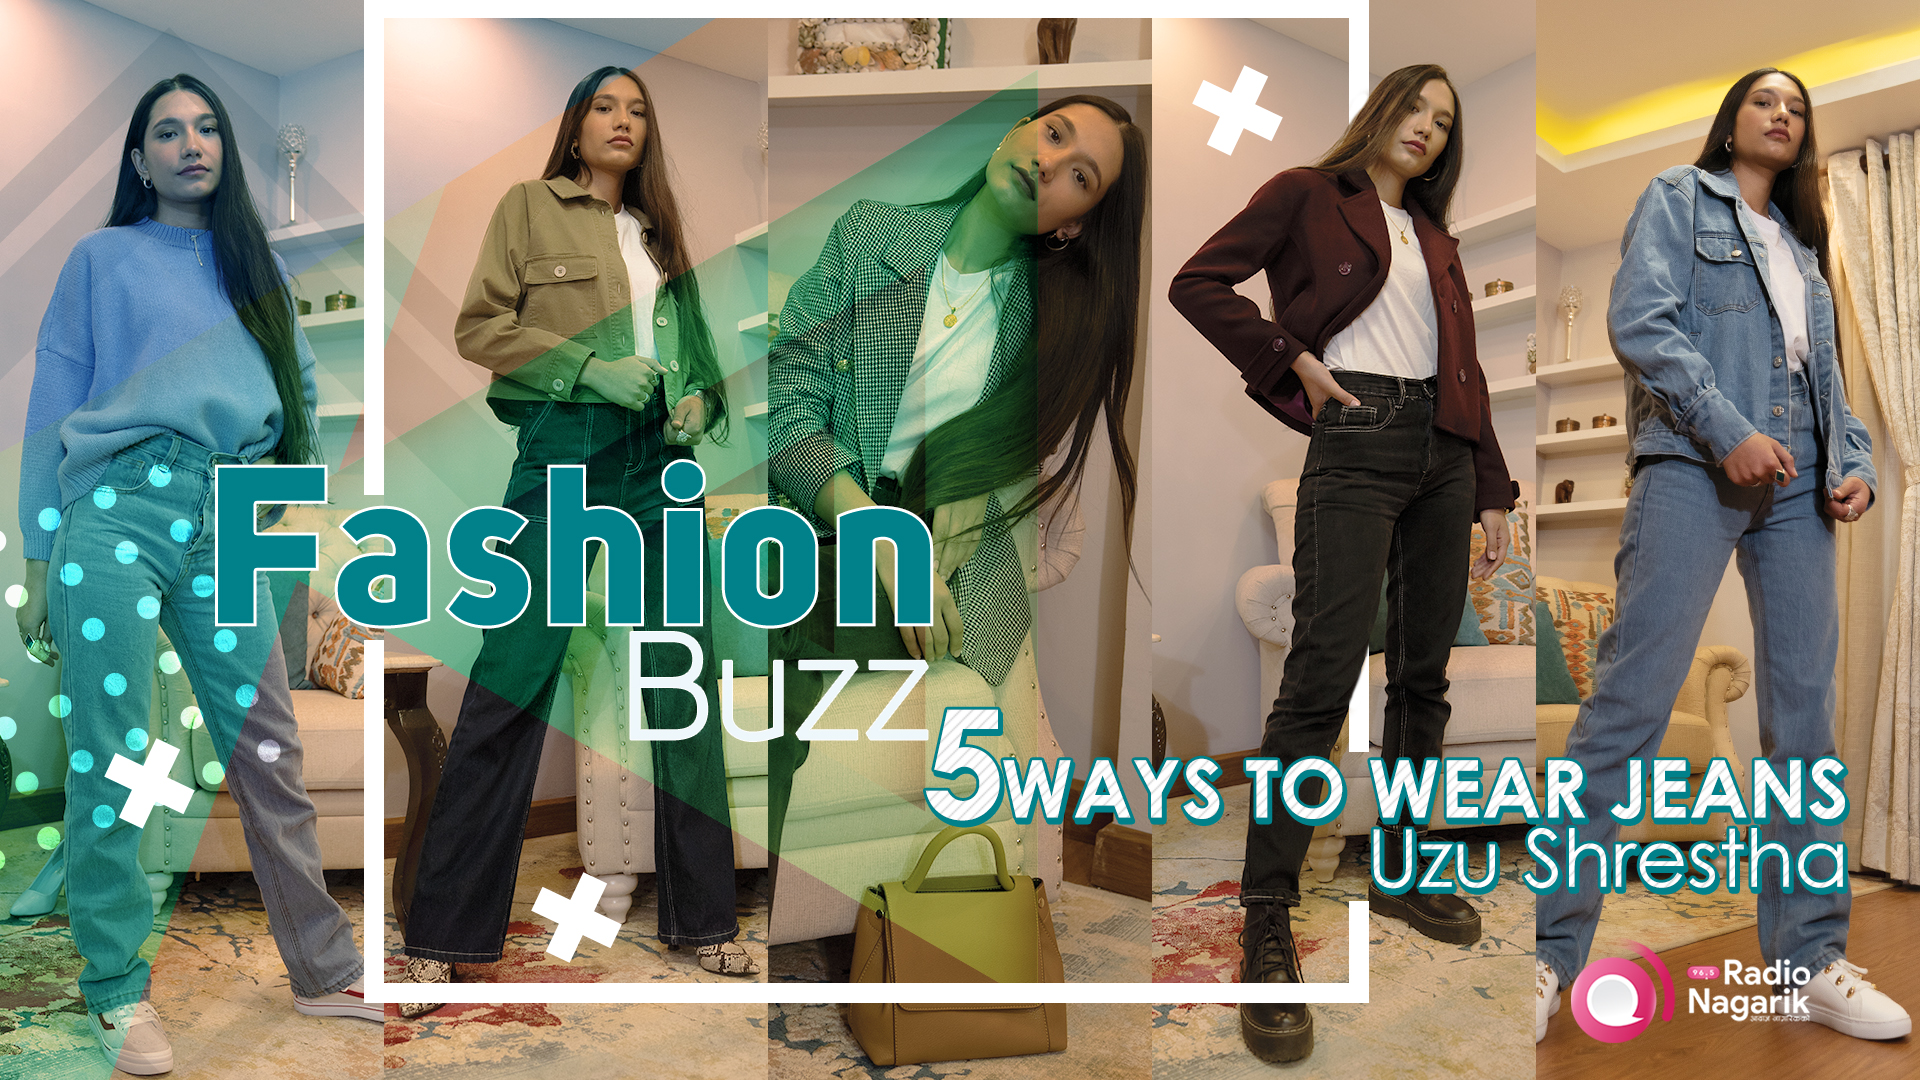 Fashion Buzz / 5 ways to wear Jeans | Uzu Shrestha - Stop what you are doing | Jeans Tips and Tricks